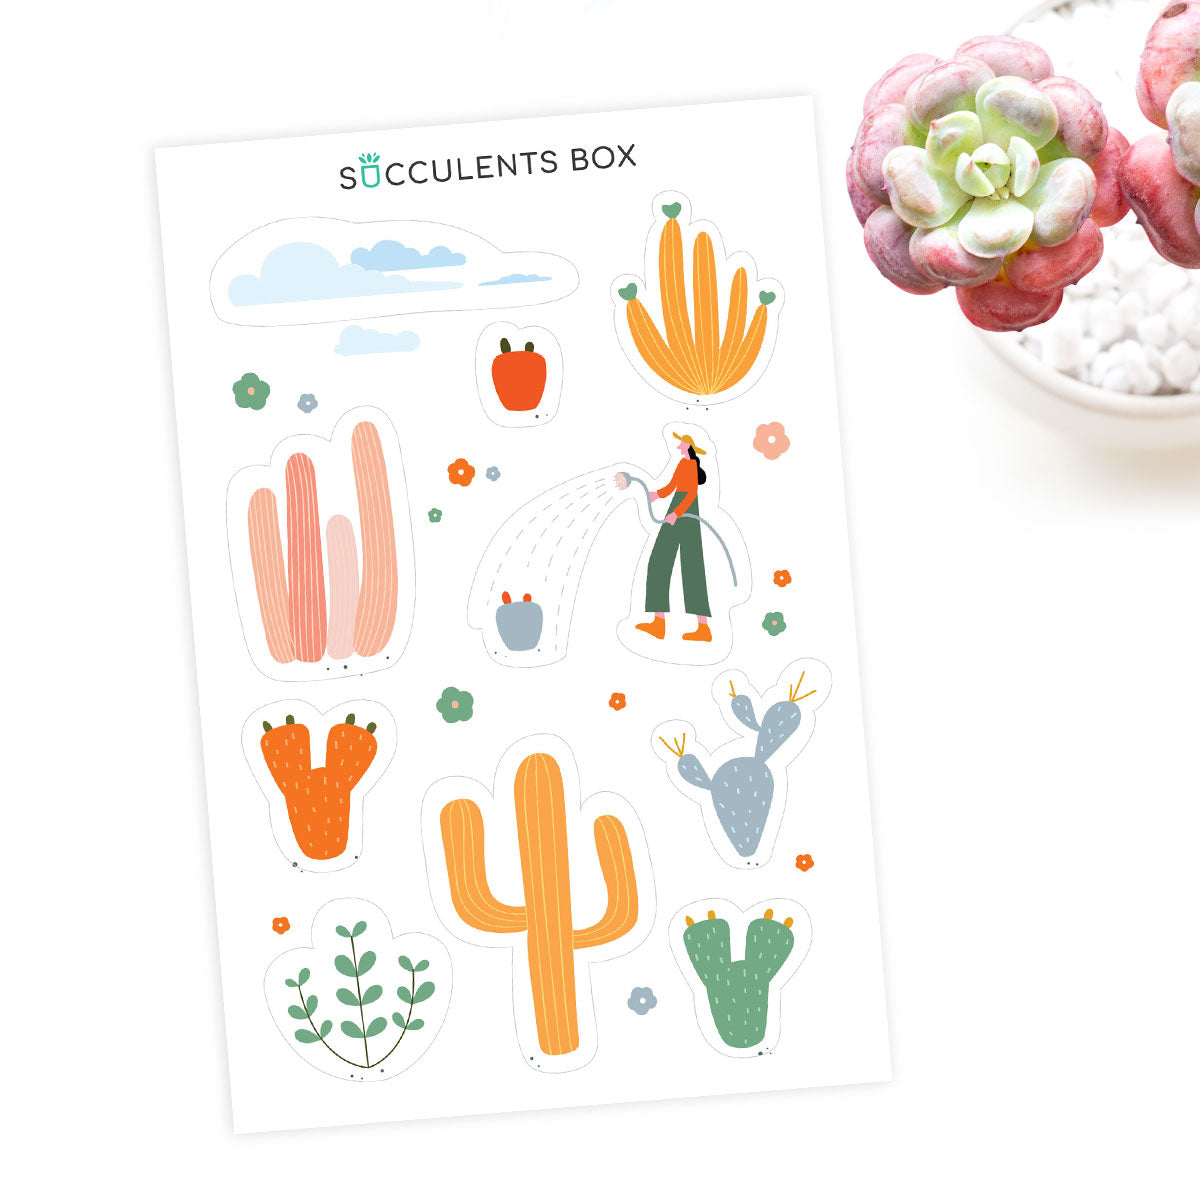 Succulent Planner Sticker for sale, succulent craft ideas, succulent gift ideas, cute plant stickers, decorative scrapbook sticker for sale, Cute Succulents Sticker